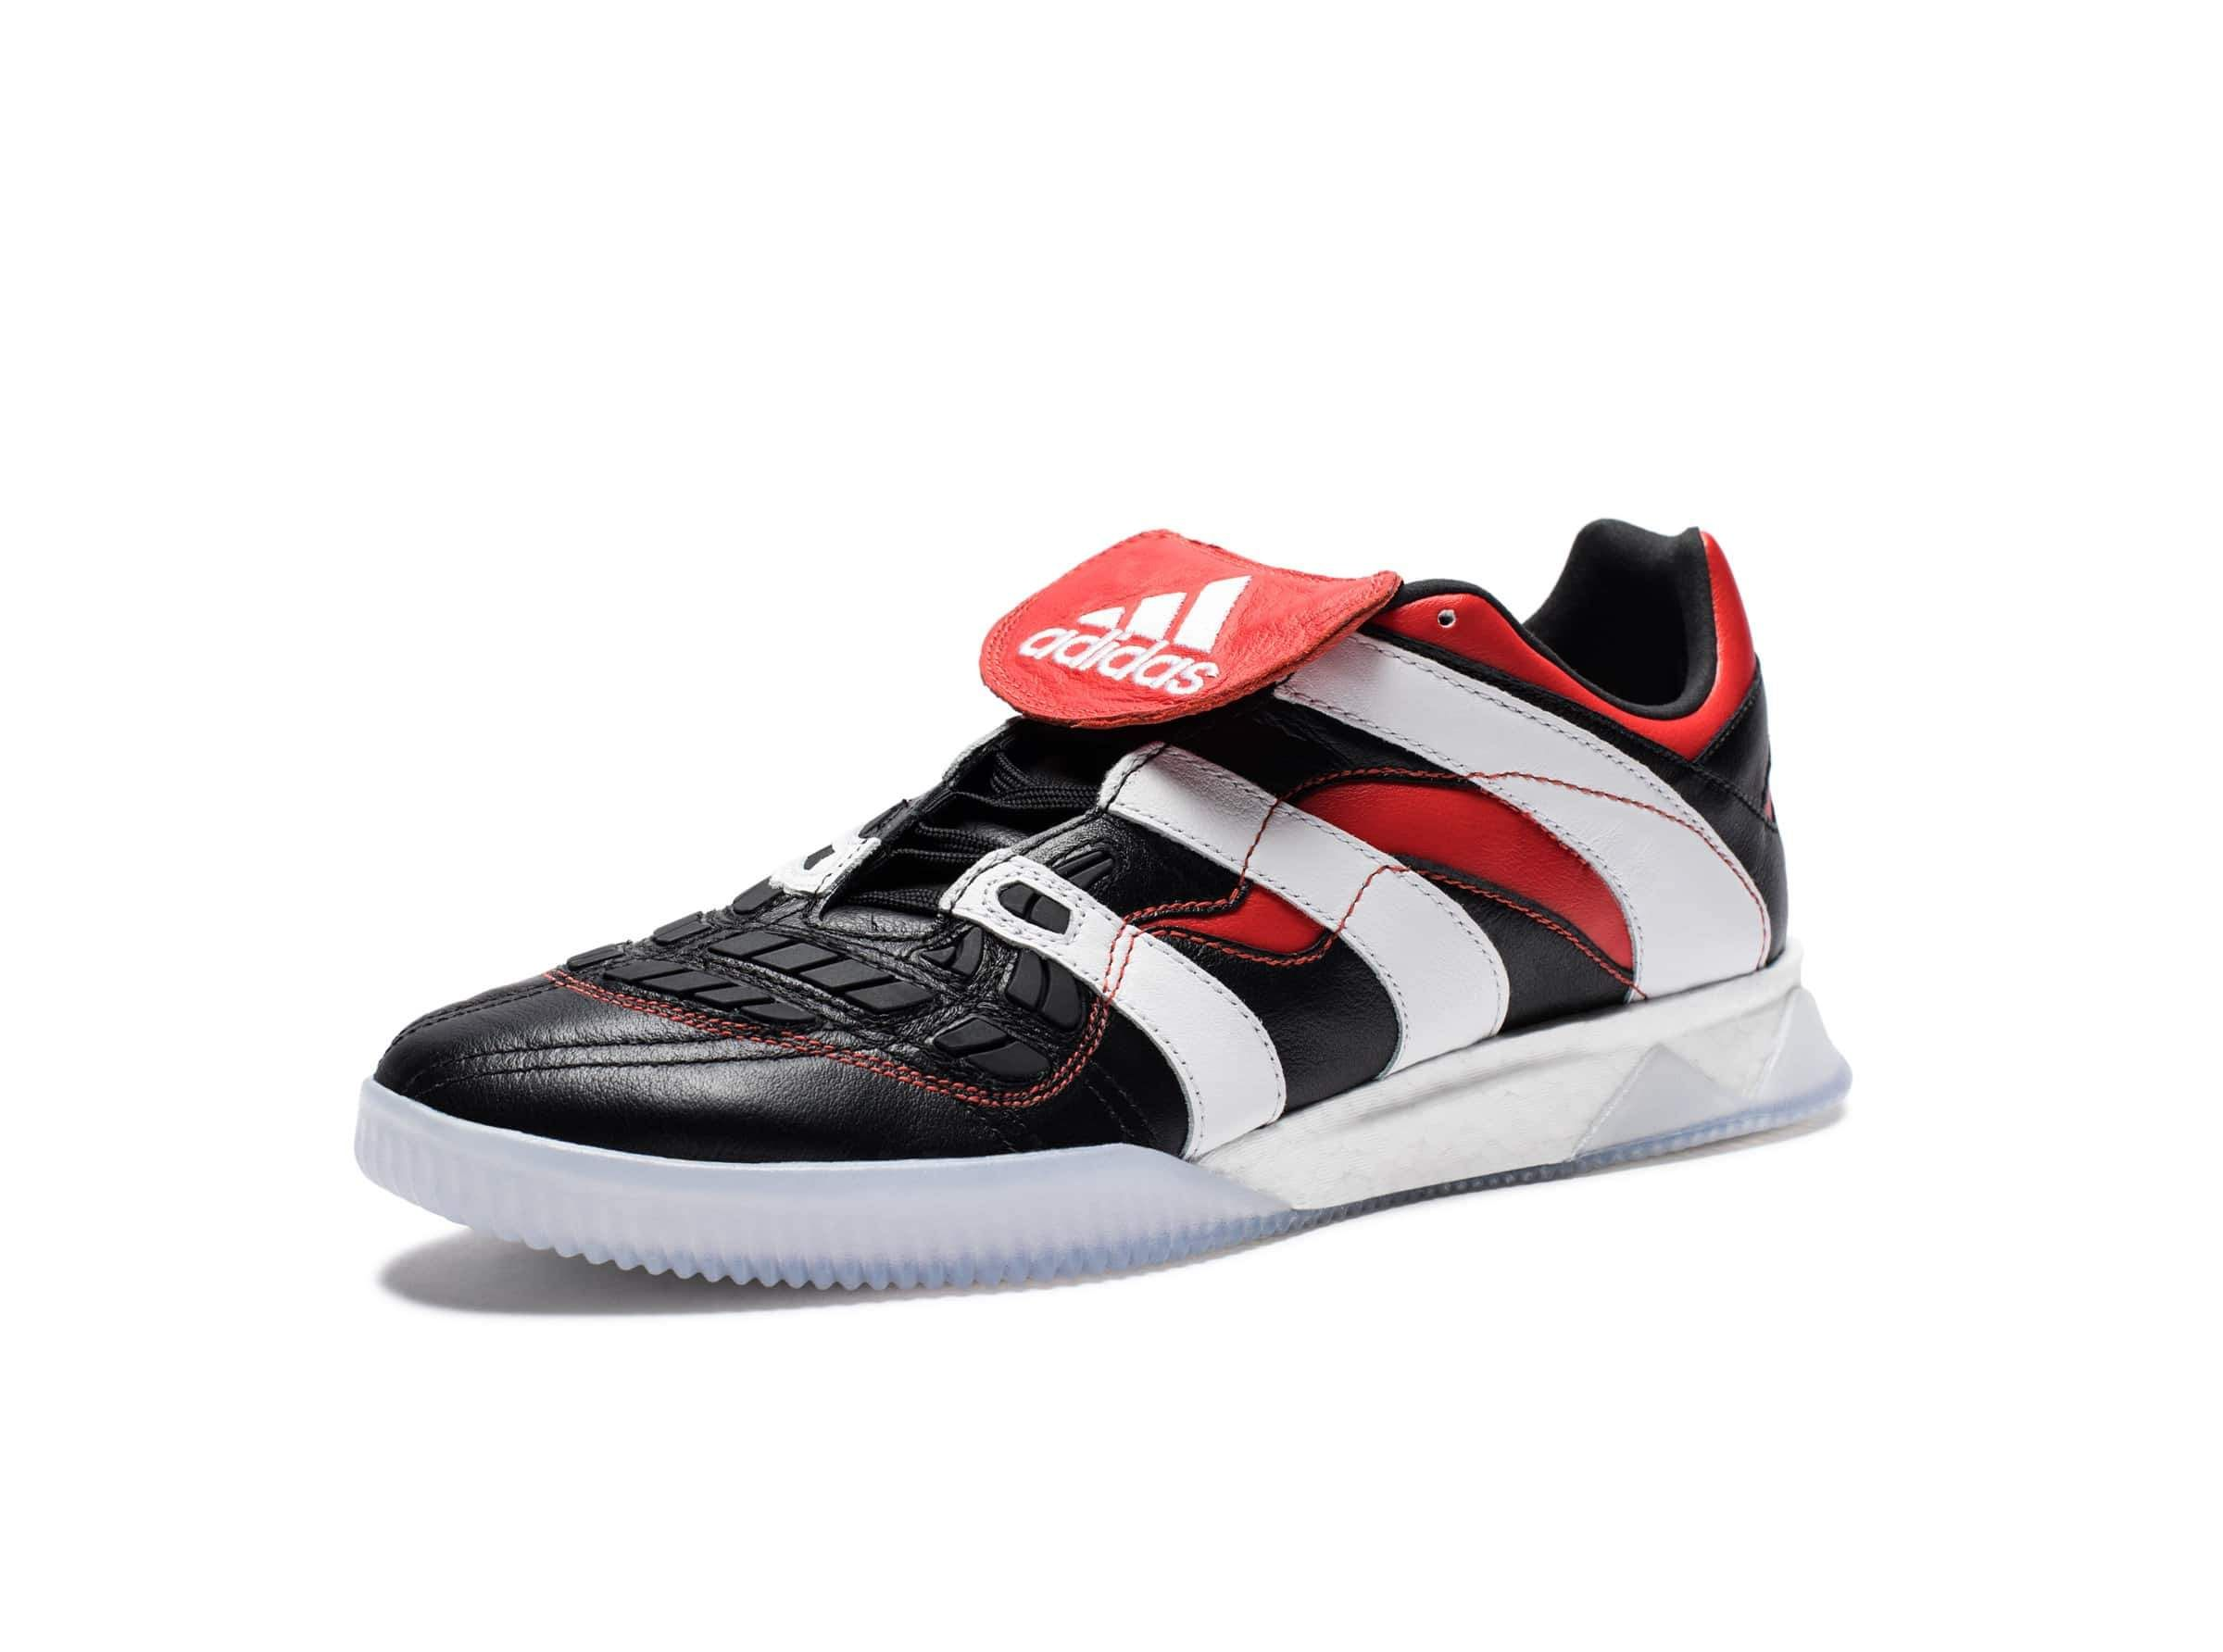 a72006899a98 sneakers-uomo-autunno-inverno-2018-2019-sneakers-adidas-1538745363.jpg